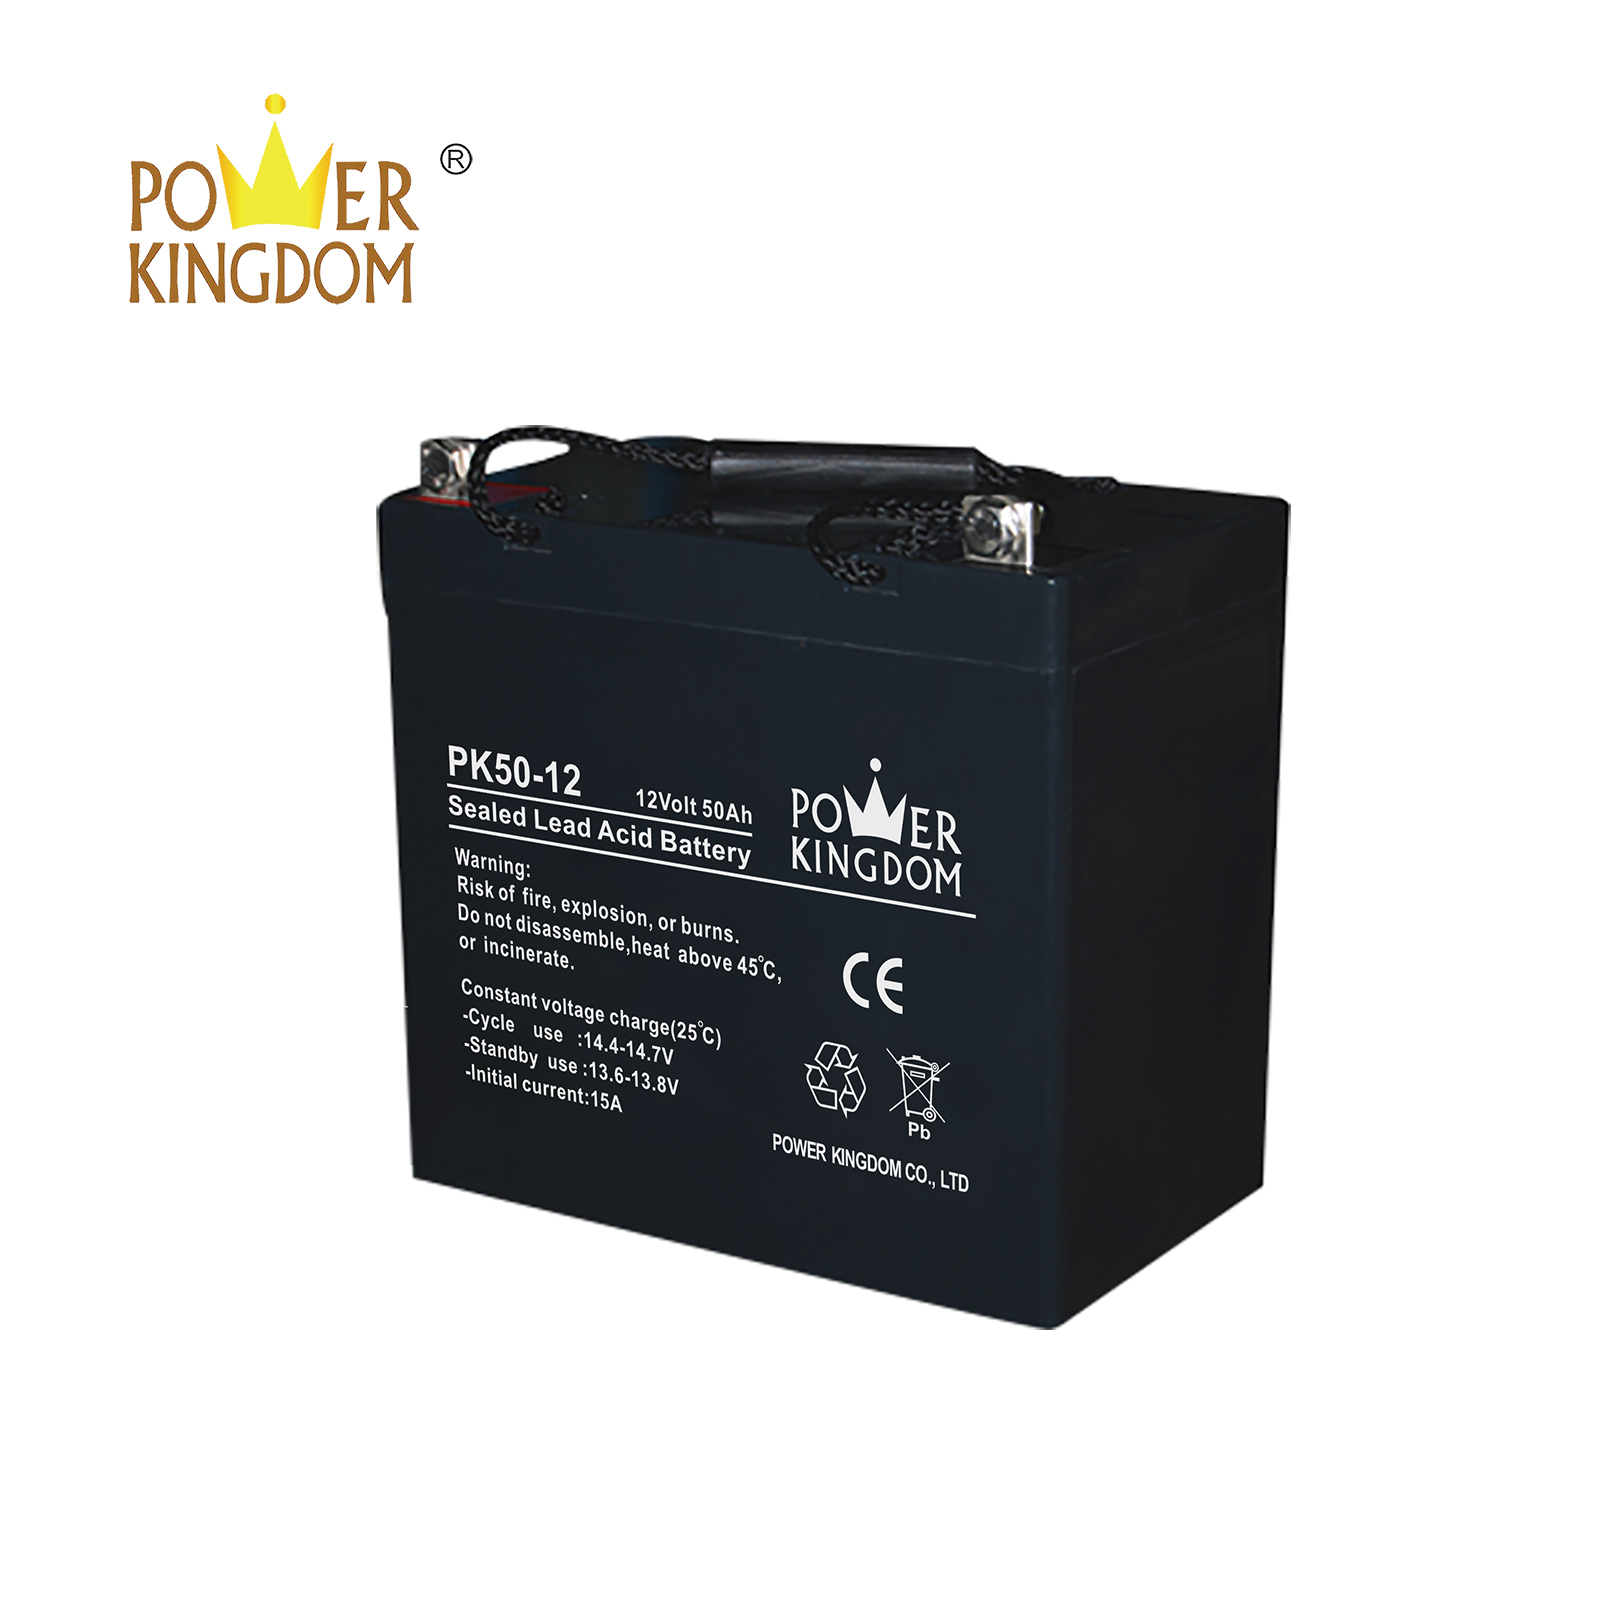 Power Kingdom advanced plate casters vrla agm battery price customization solar and wind power system-2